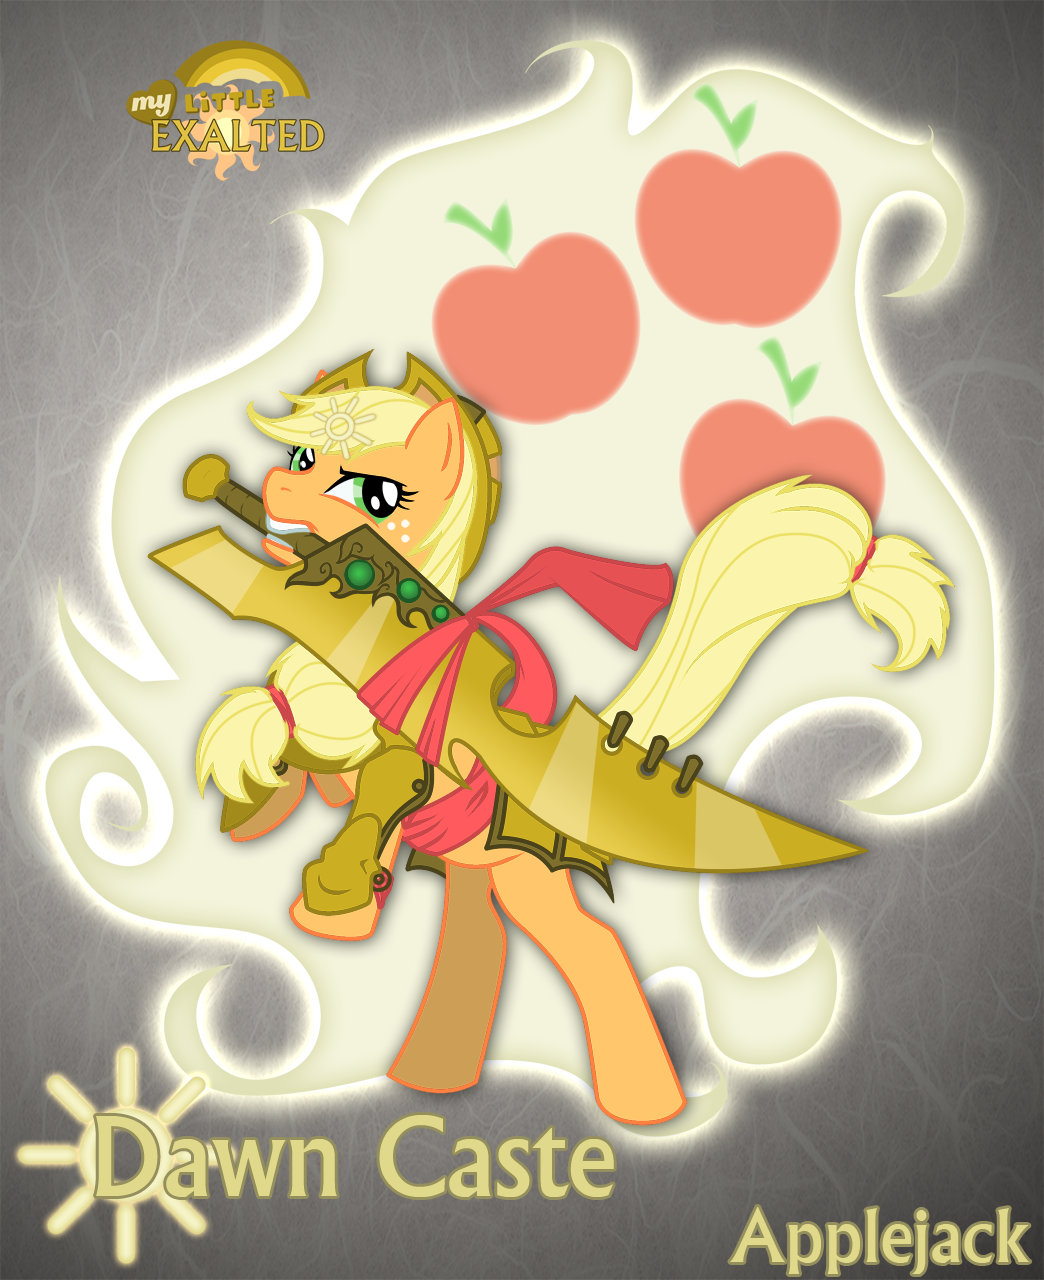 Dawn Caste Applejack by Rhanite